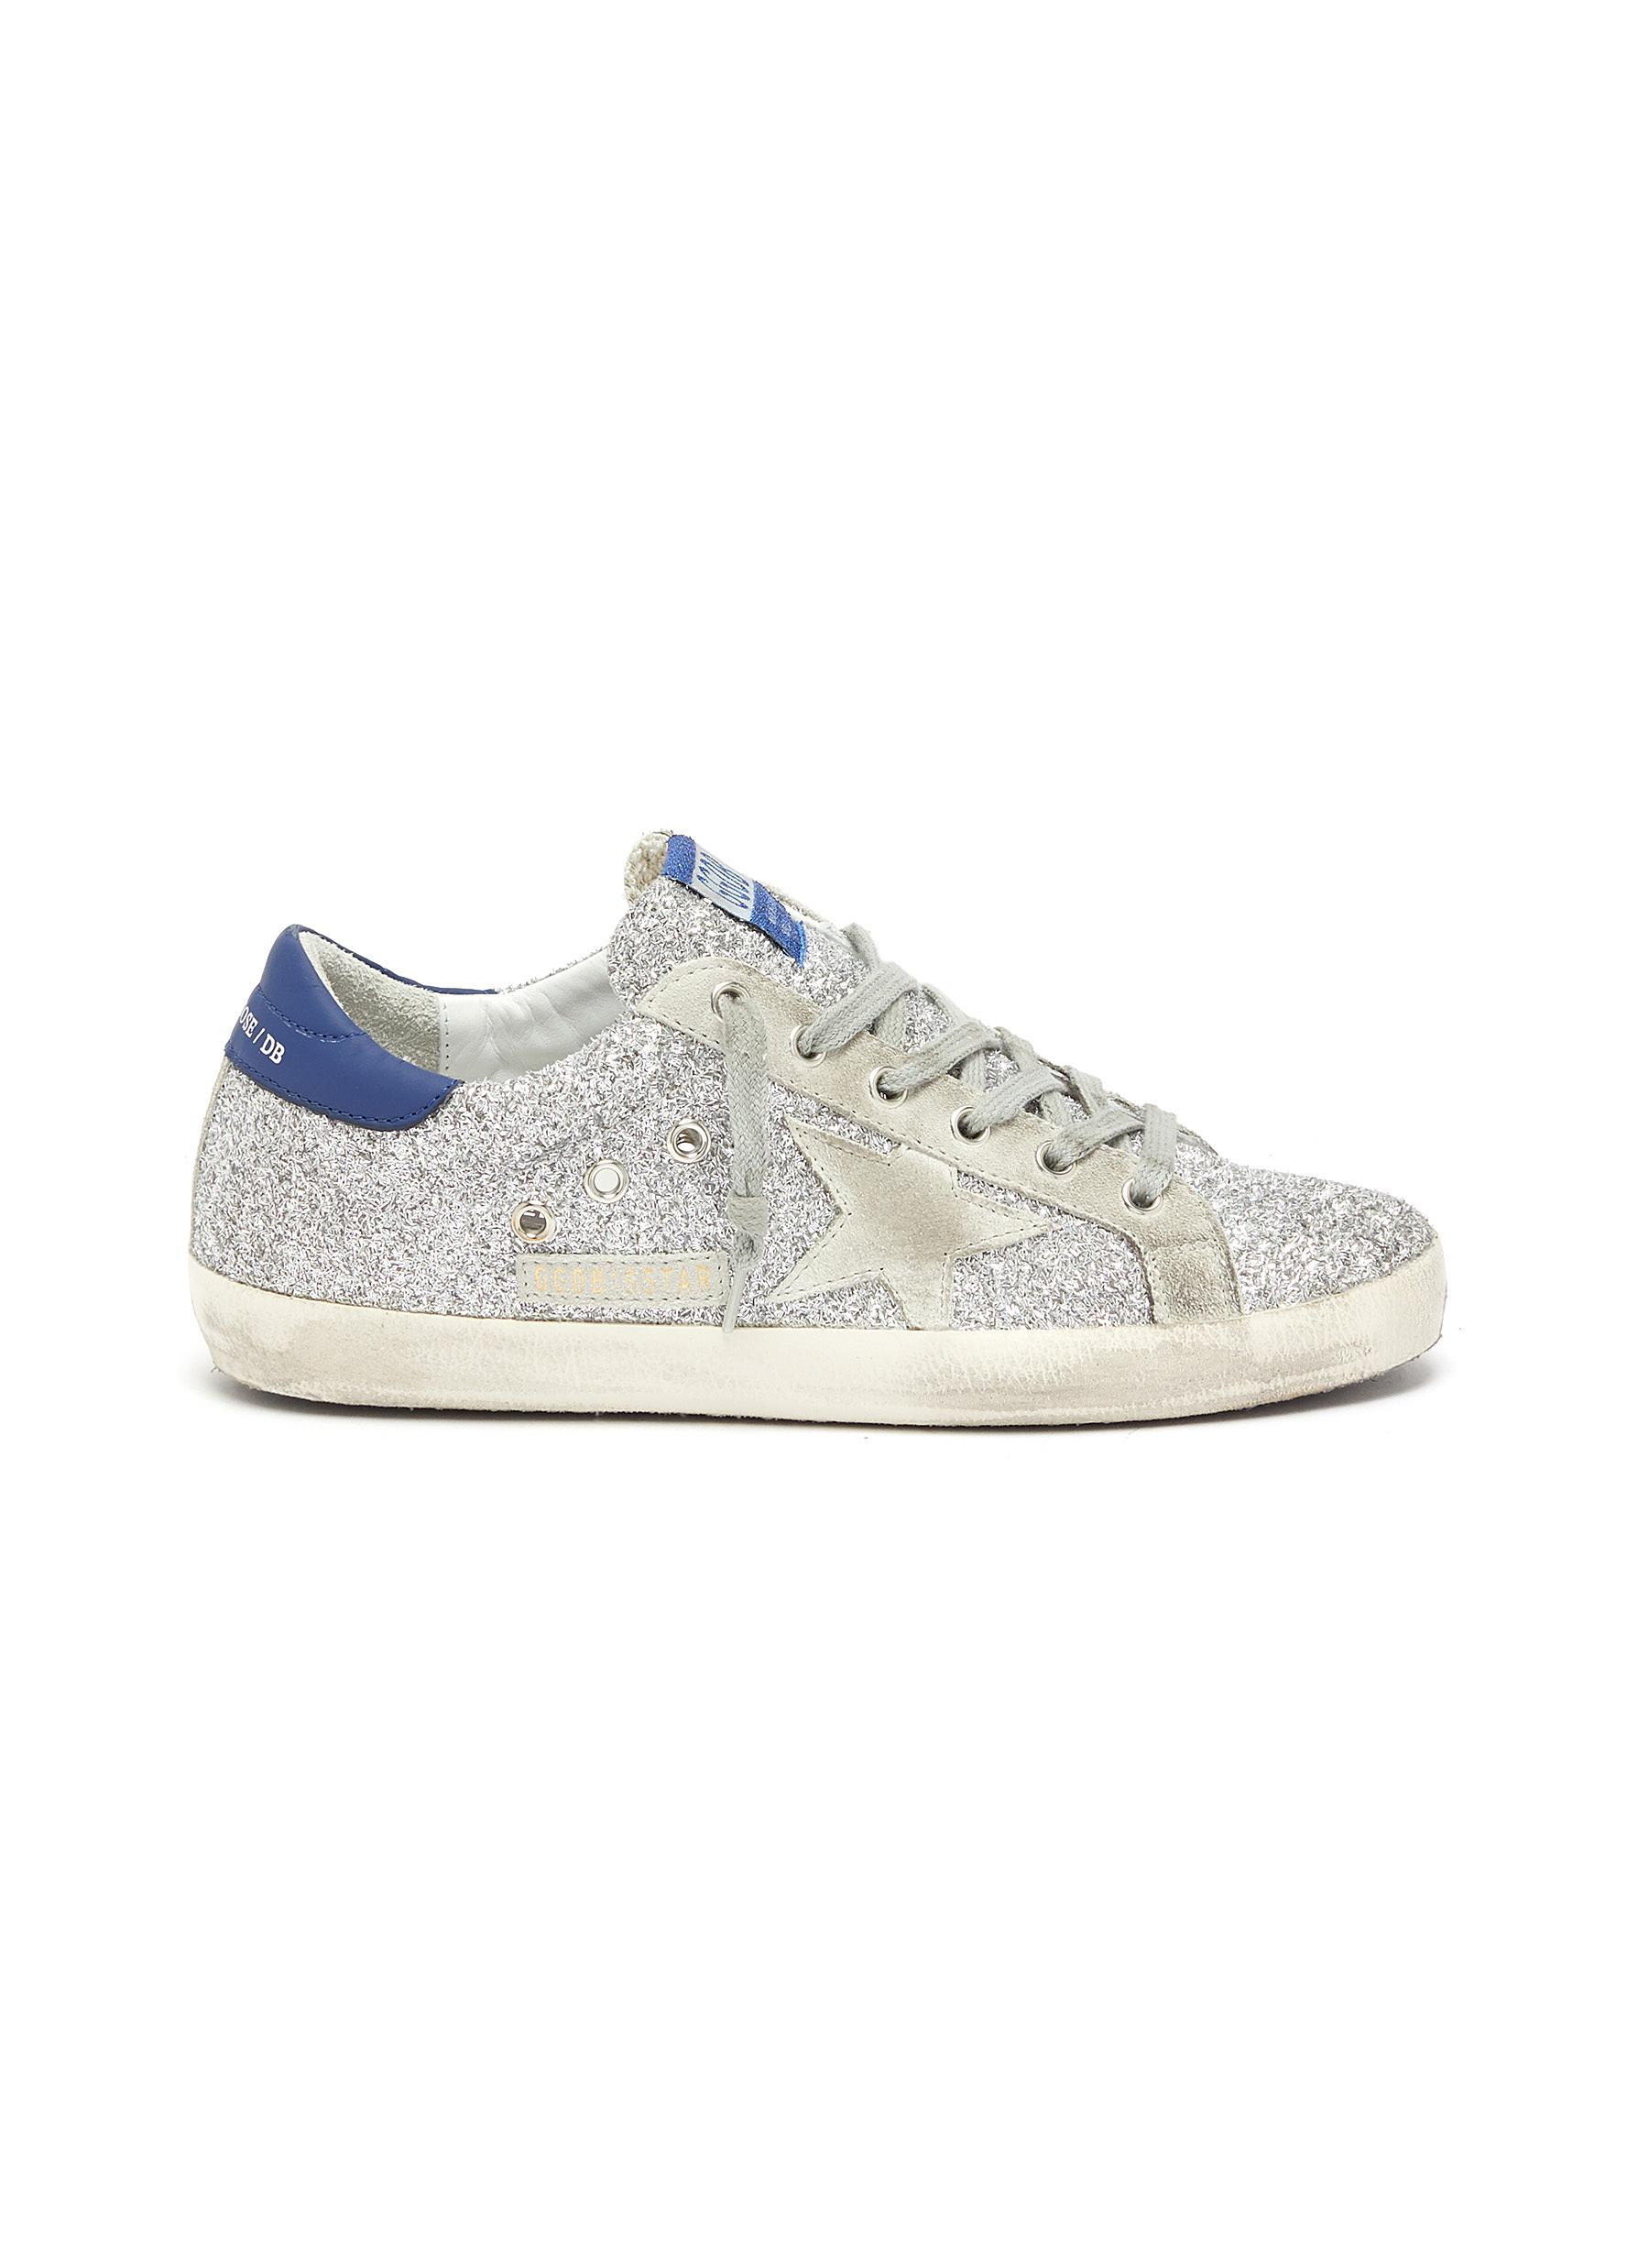 Superstar suede panel glitter sneakers by Golden Goose